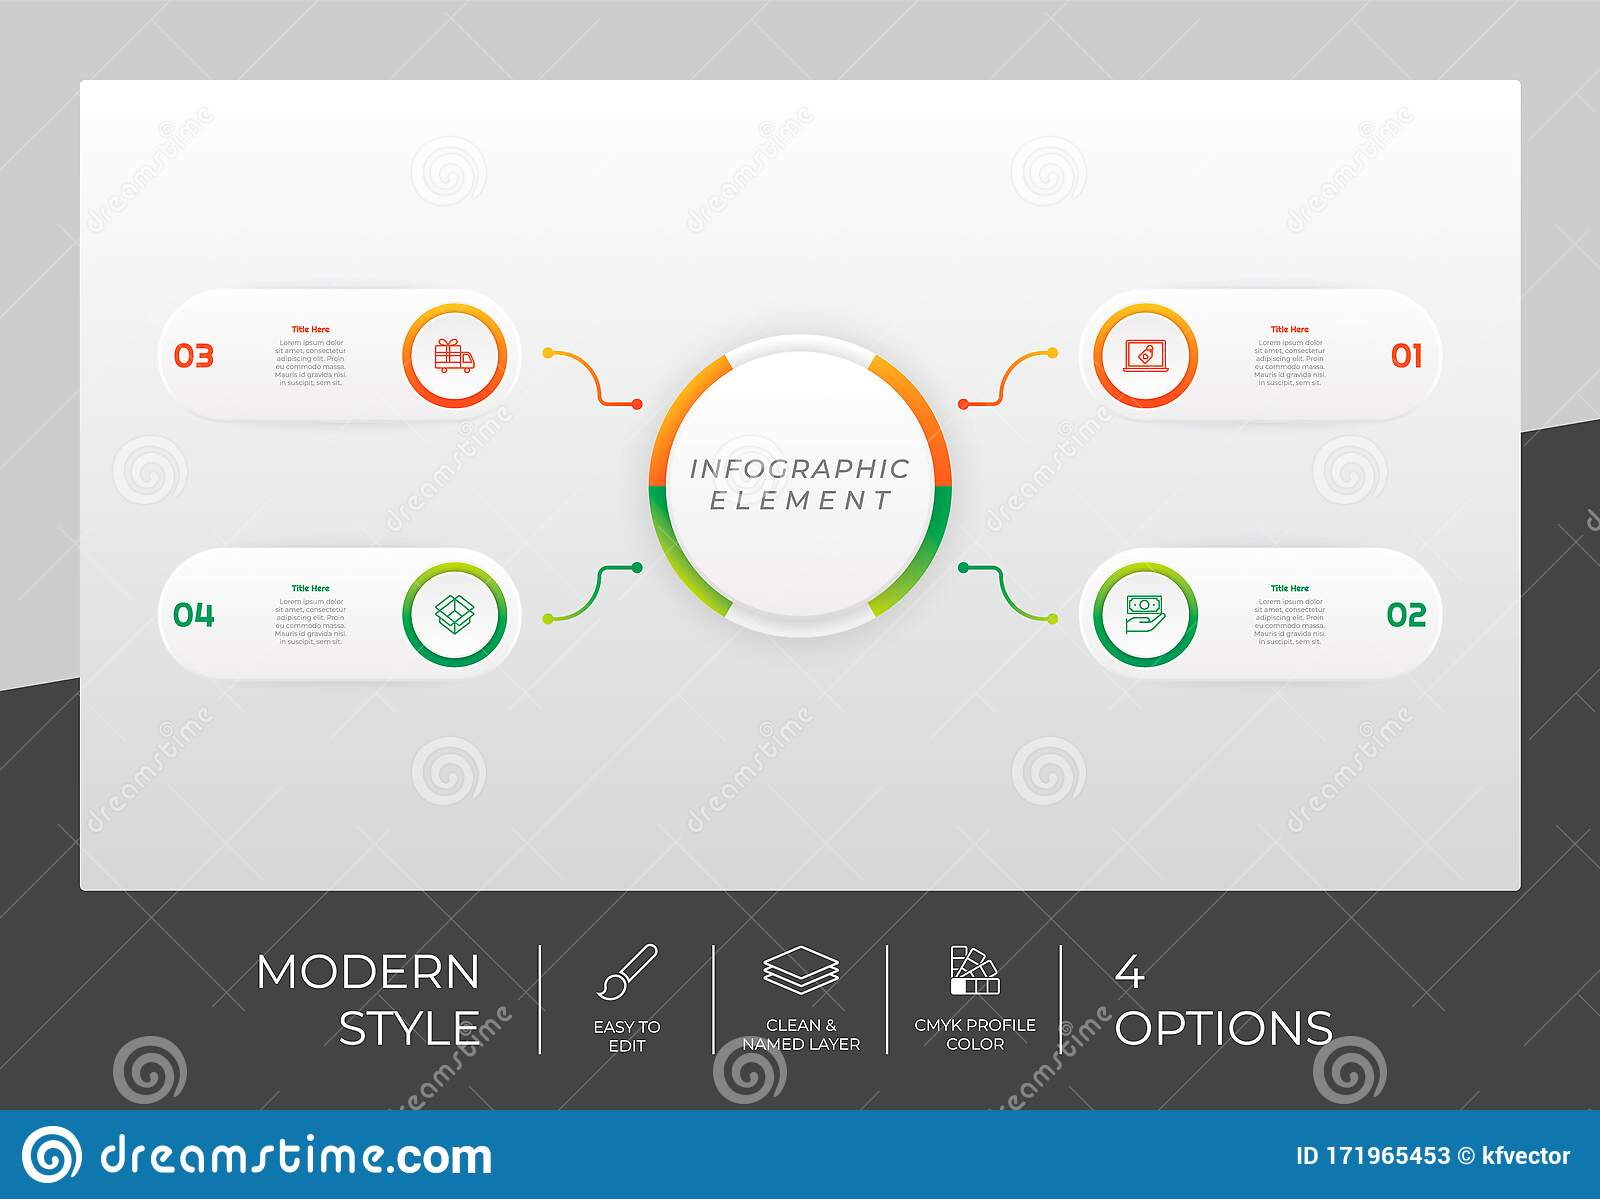 Circle Option Infographic Vector Design With 4 Options Colorful Style For Presentation Purpose Modern Option Infographic Can Be Stock Vector Illustration Of Circle Connection 171965453